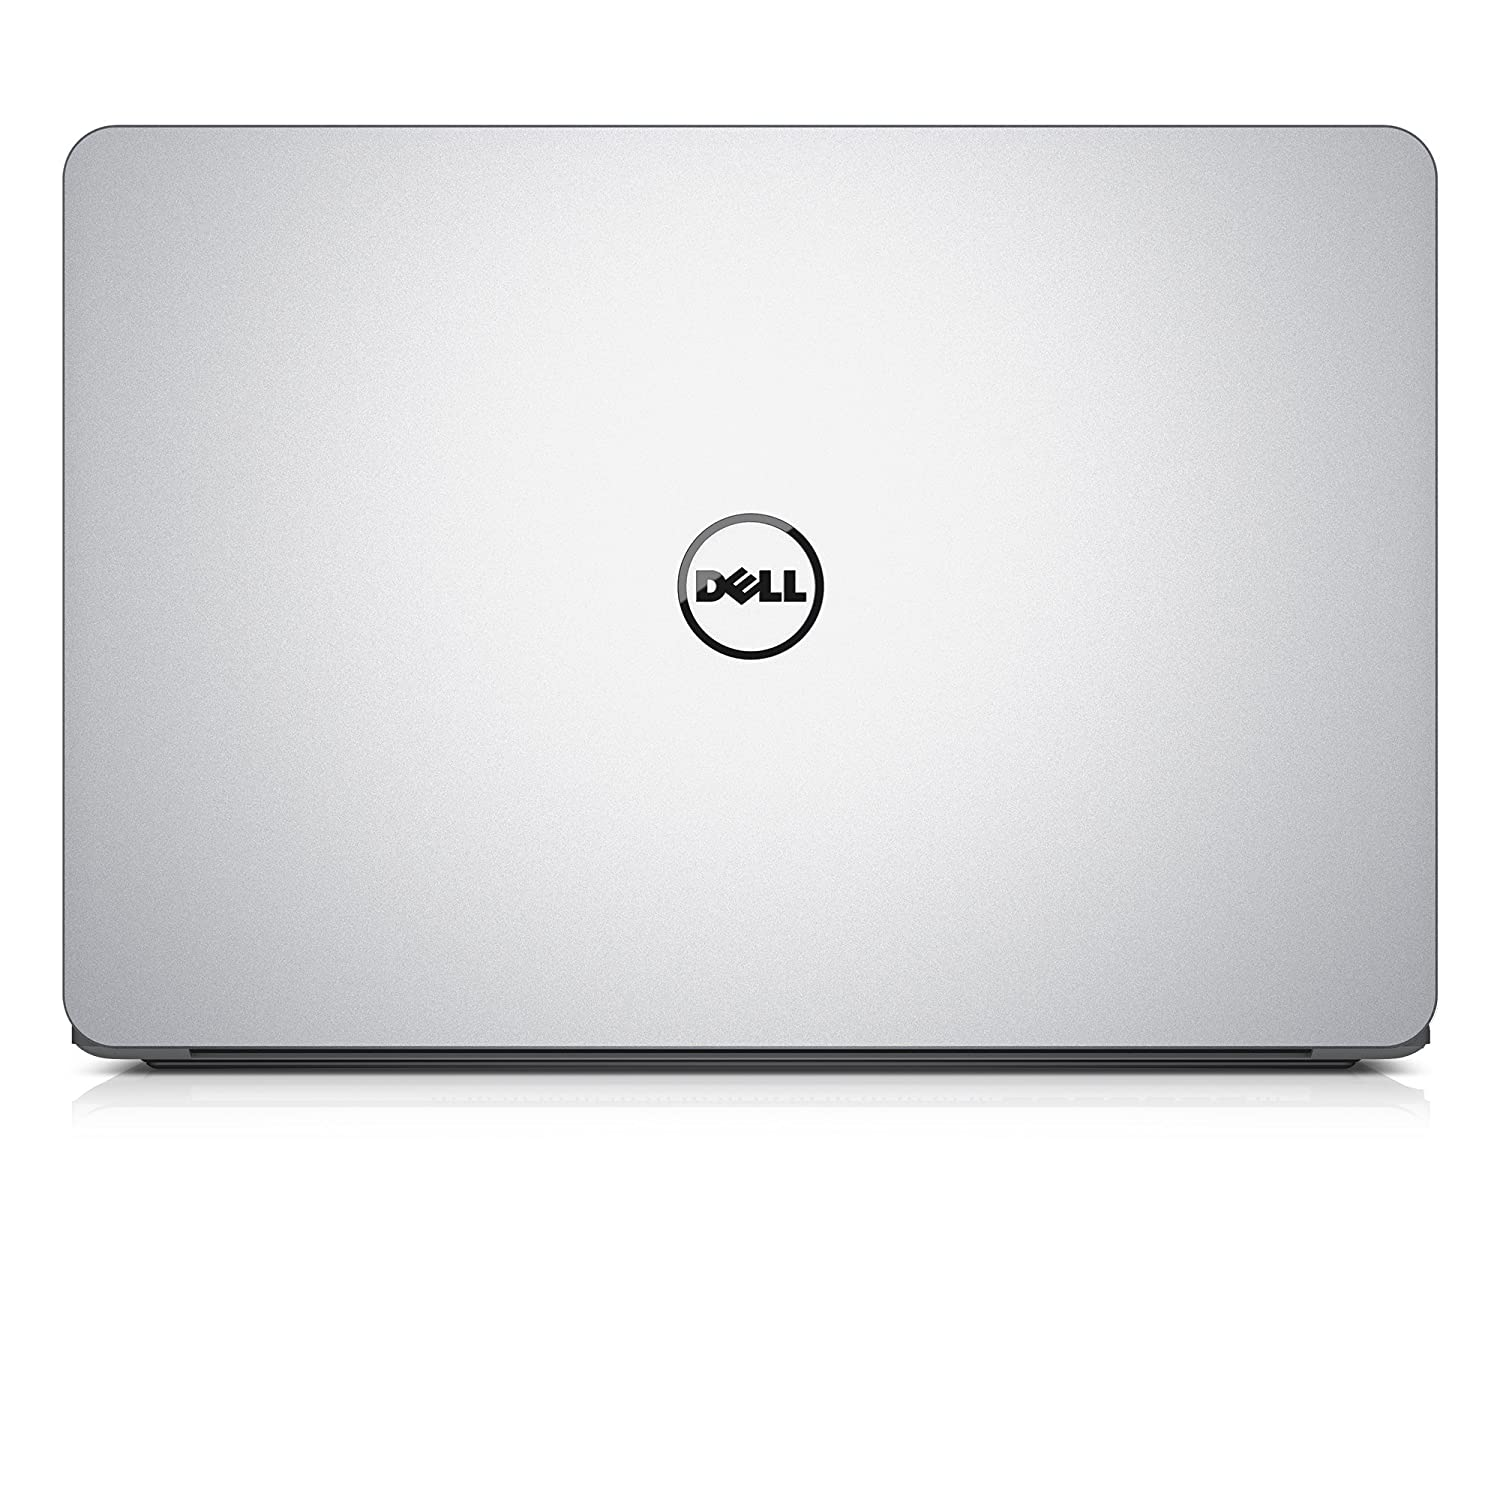 Dell-Inspiron-15-7000-Series-i7537T-2786sLV-15-Inch-Touchscreen-Laptop-Silver-